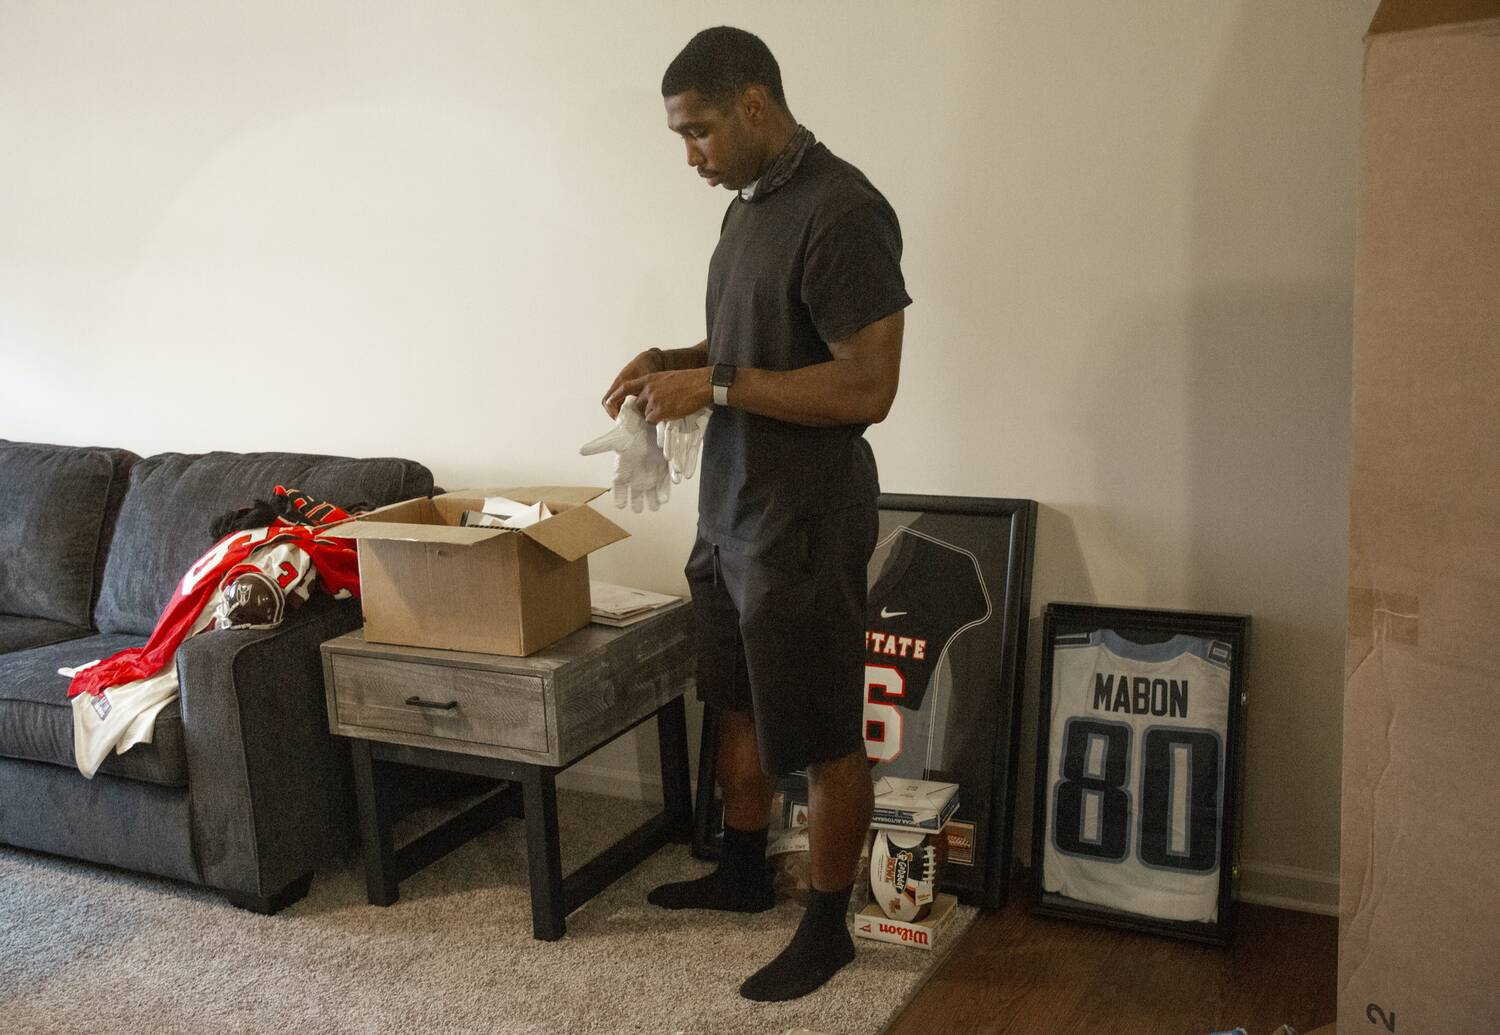 A man stands in a living room, unpacking items from a cardboard box.